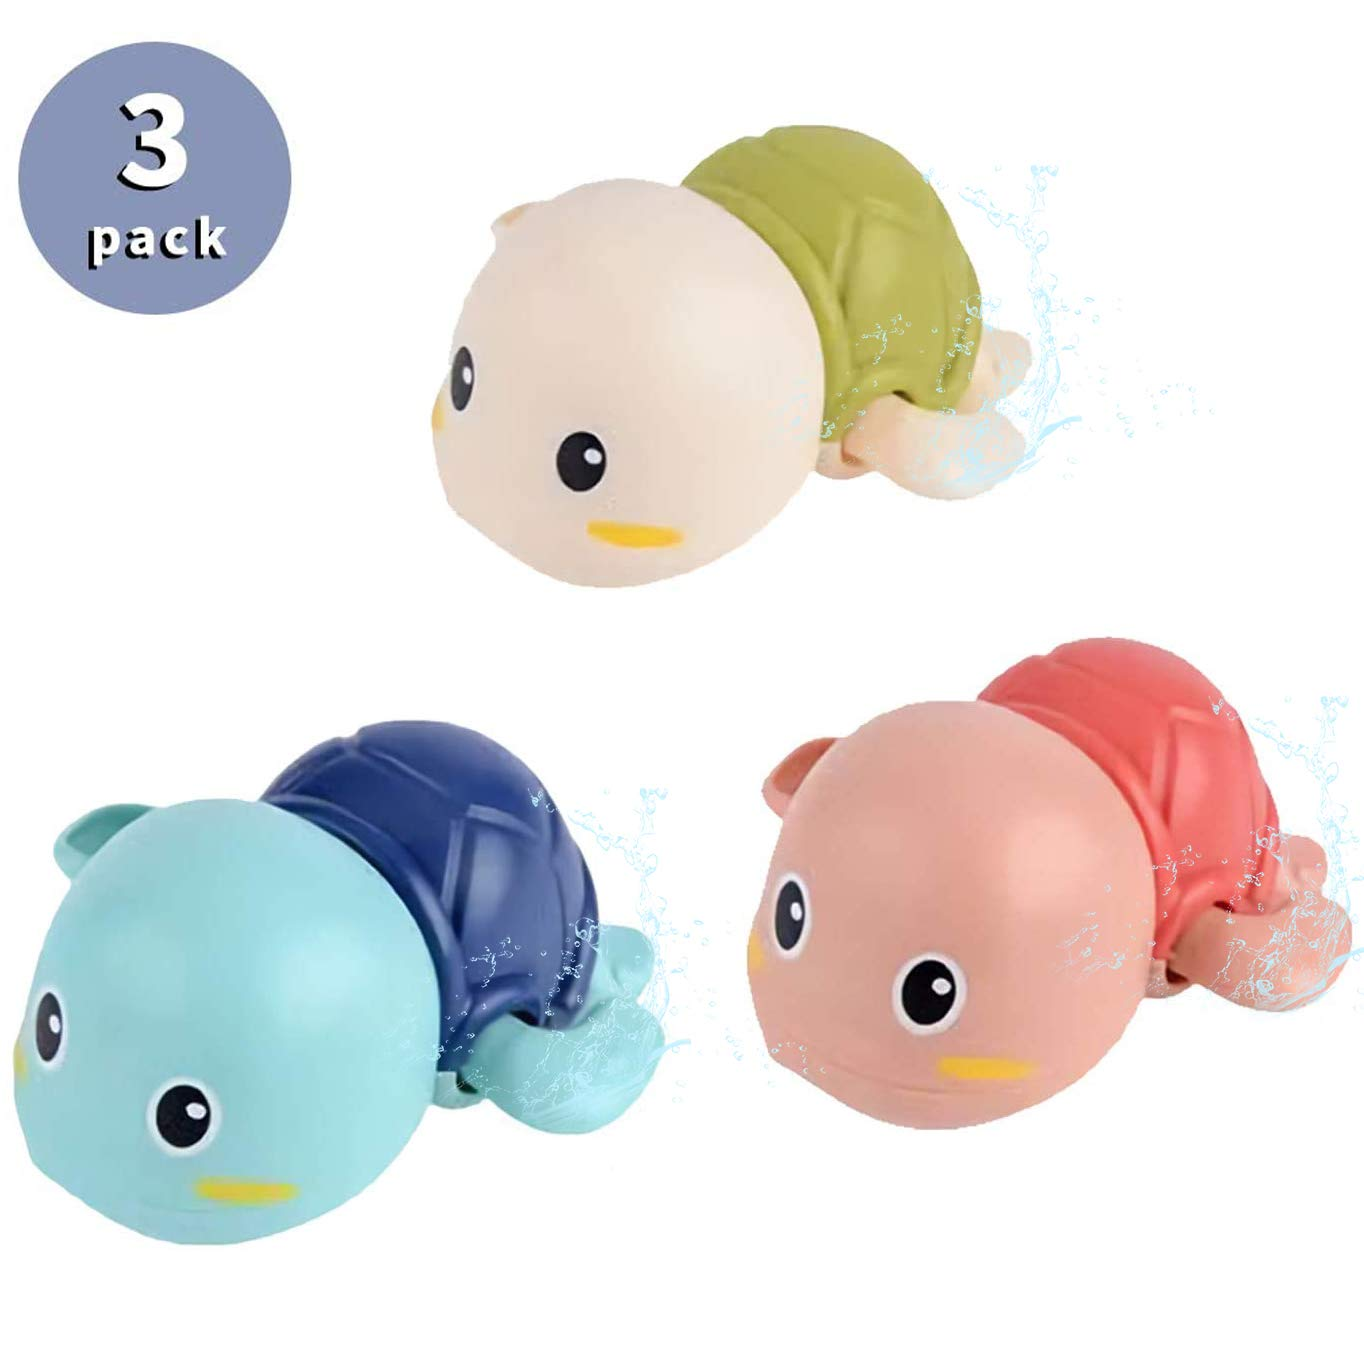 Turtle Toys, Baby Bath Toys, Swimming Turtle Toy, Floating Wind up Bathtub Water Toys Gifts for Toddlers Kids Boys and Girls Age 1-6 Years Old, Pack of 3